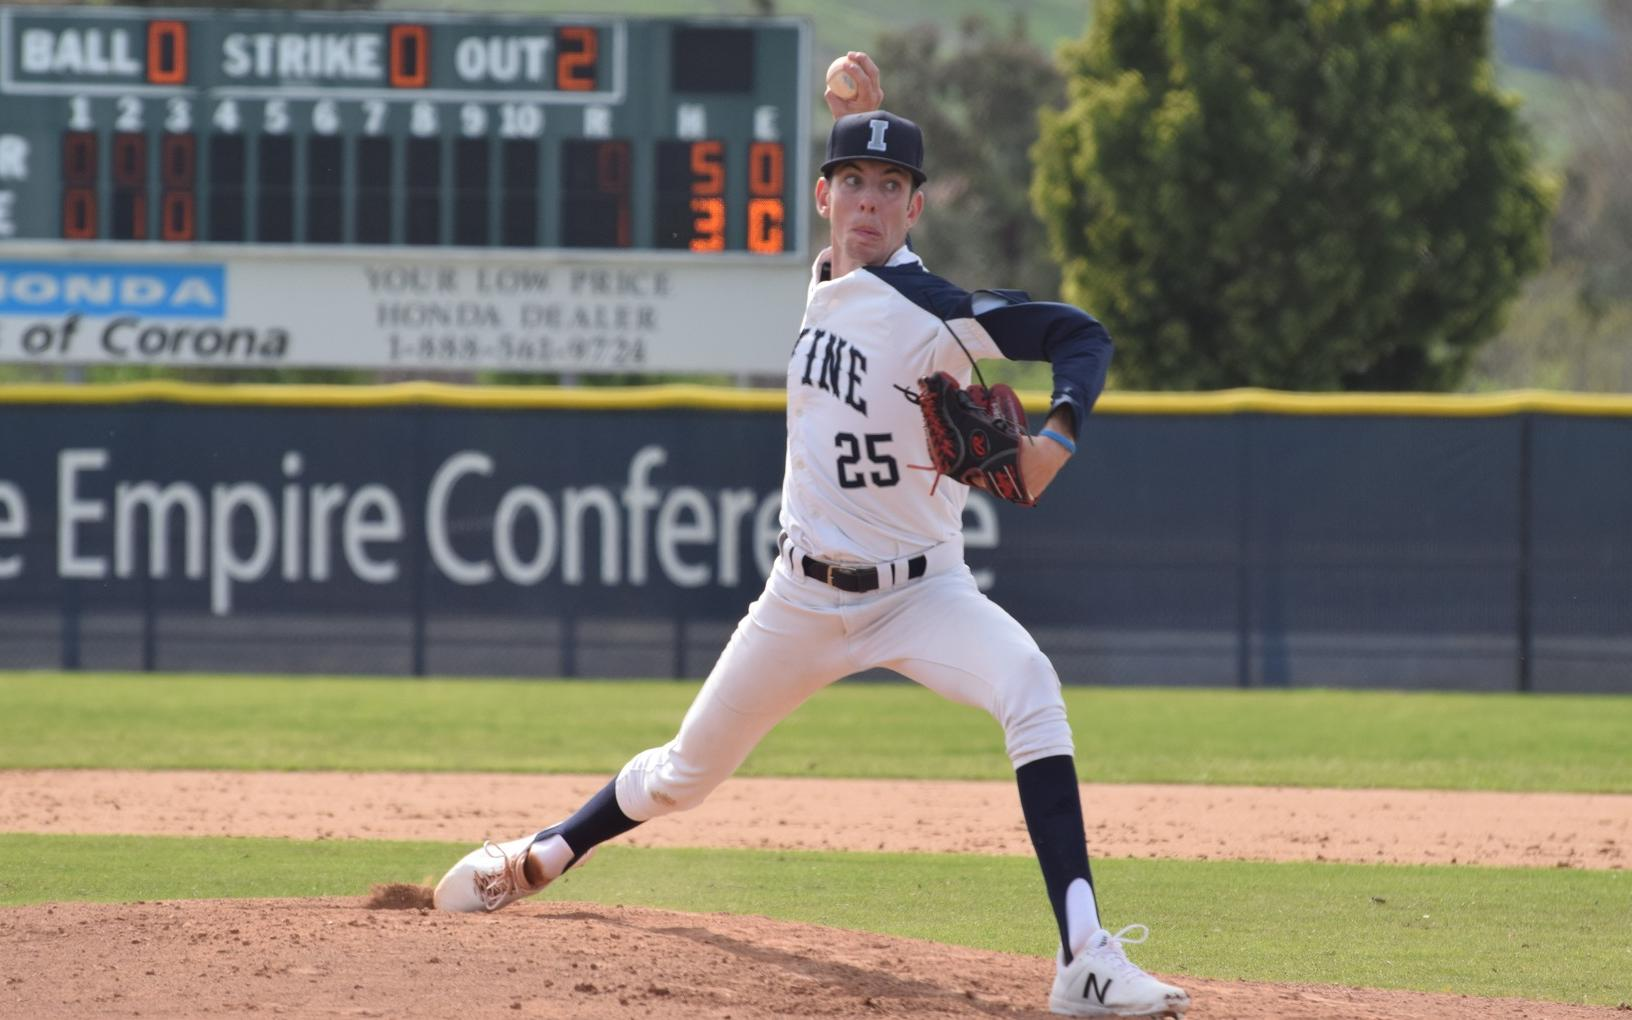 Baseball team drops tight one in conference opening game